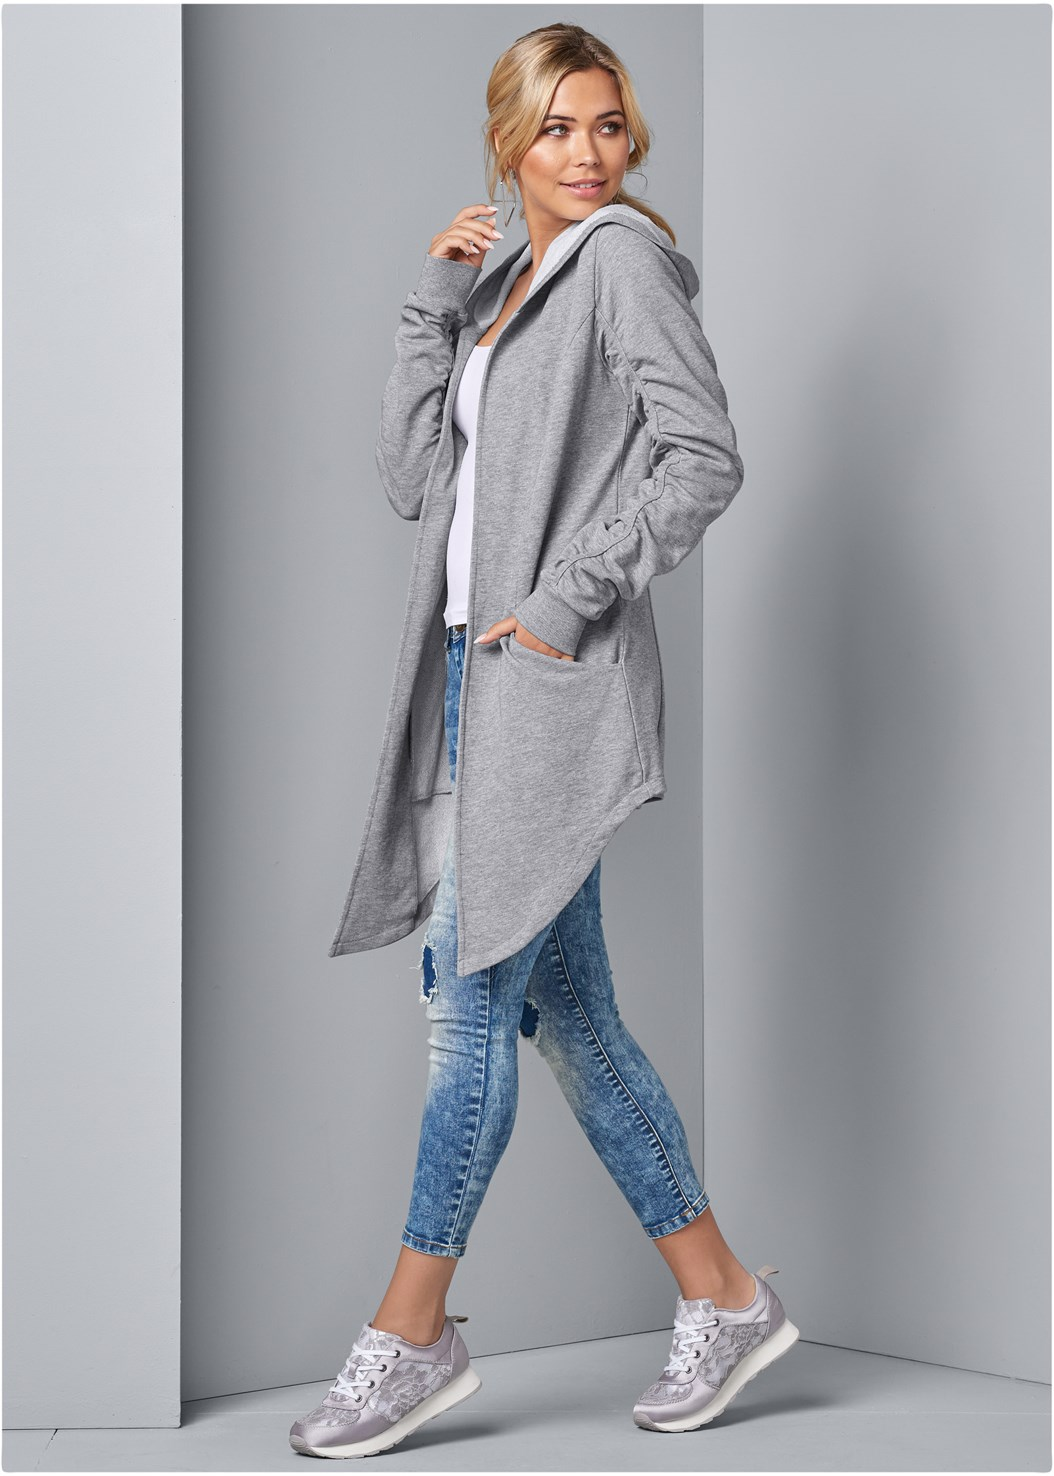 Asymmetrical Lounge Hoodie,Seamless Cami,Acid Wash Jeans,Bralette 2 Pack,Sweater Trim Boot,Stud Detail Scarf